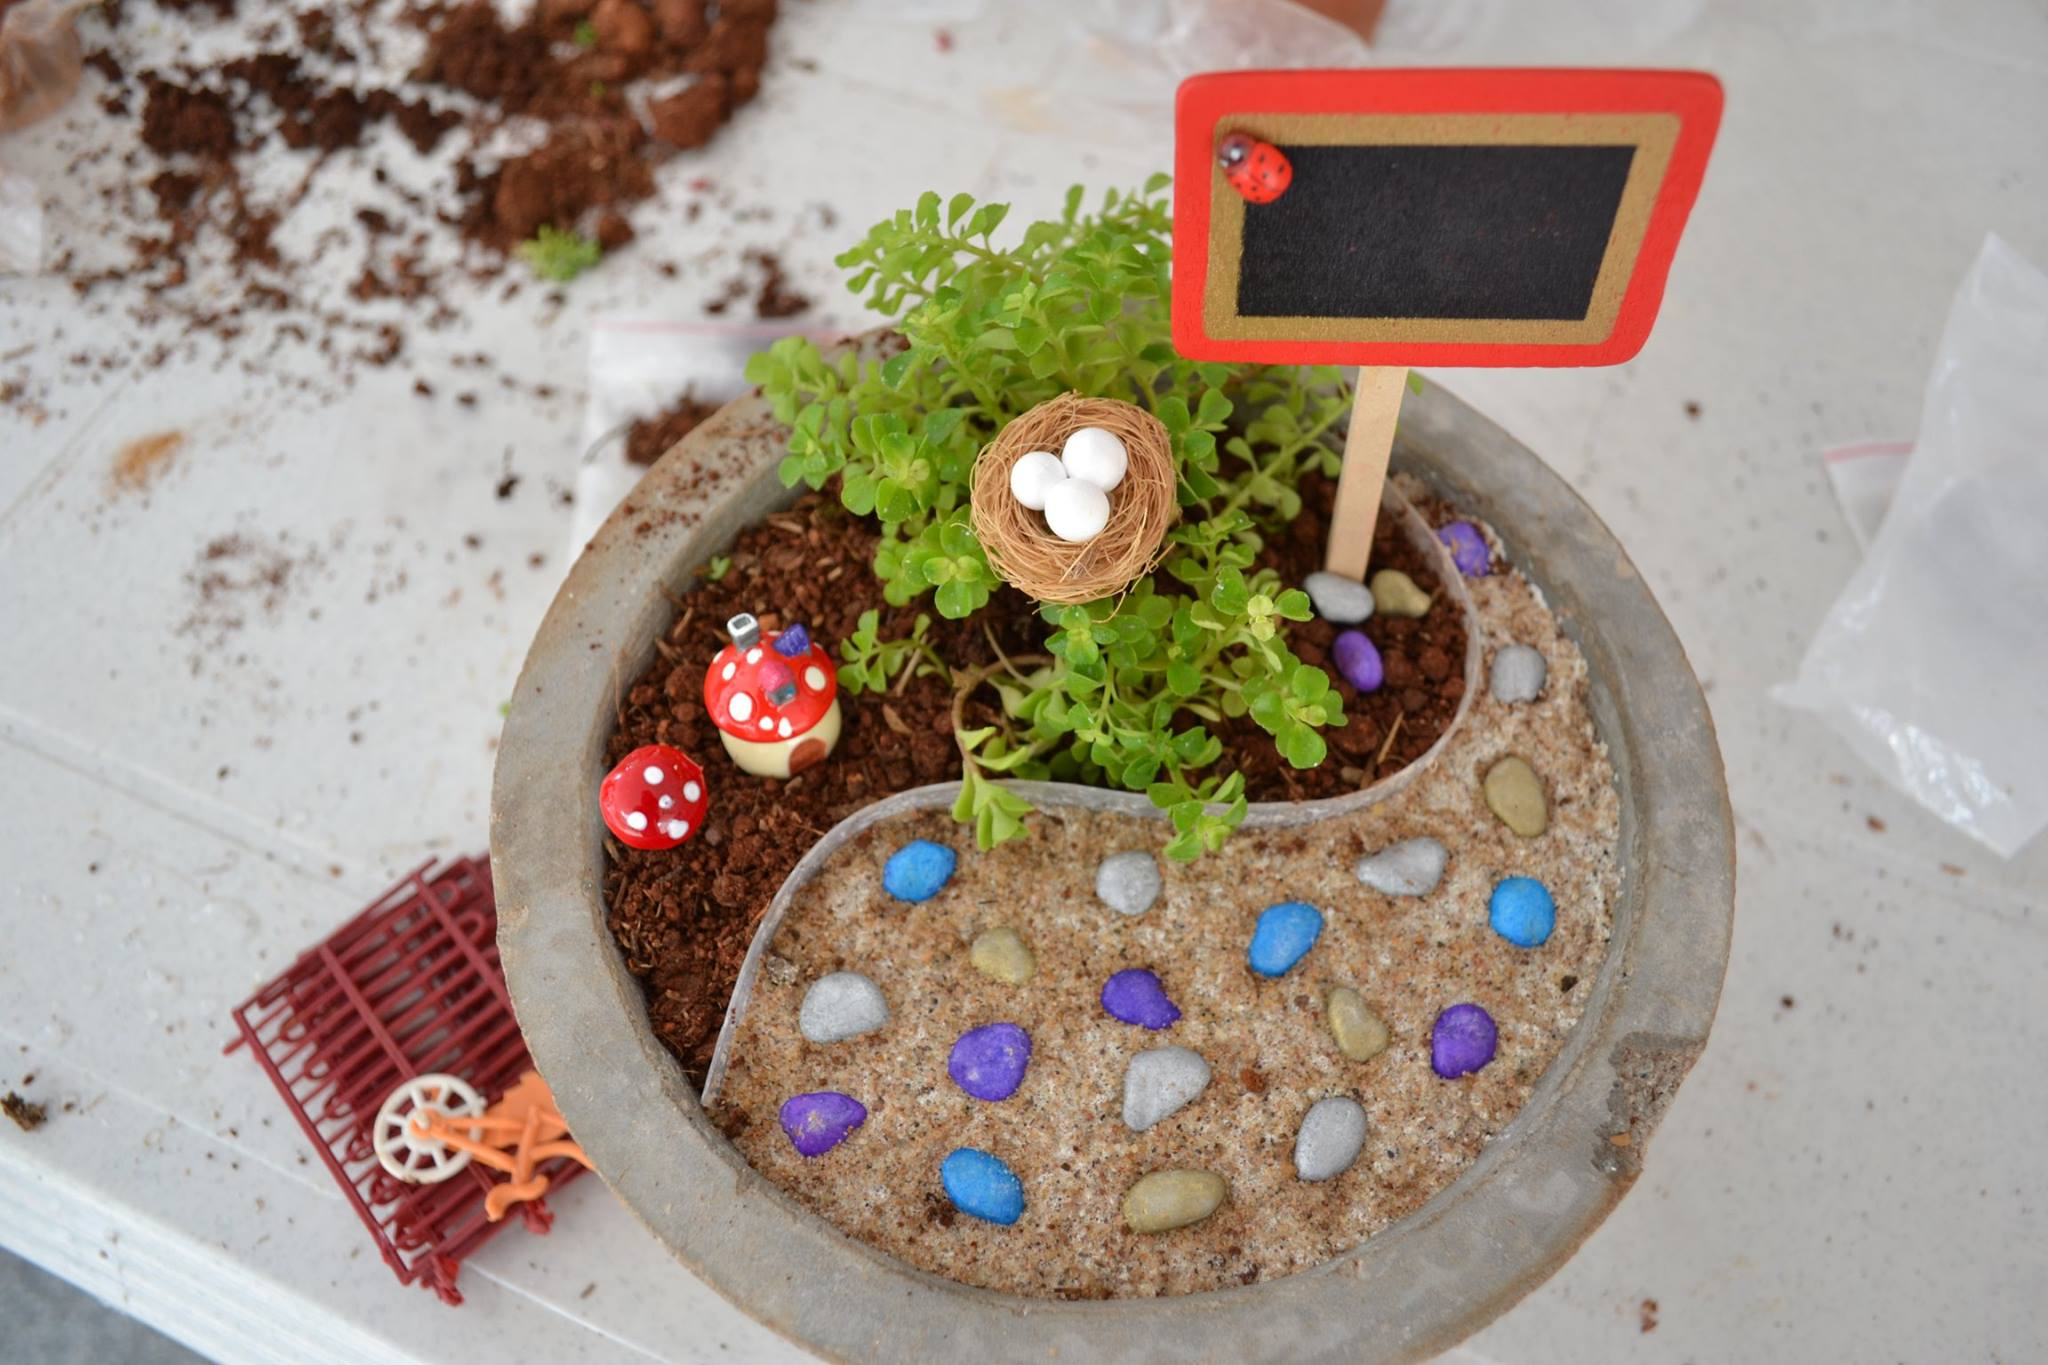 DIY Miniature Gardening Workshop Chd/Pkula